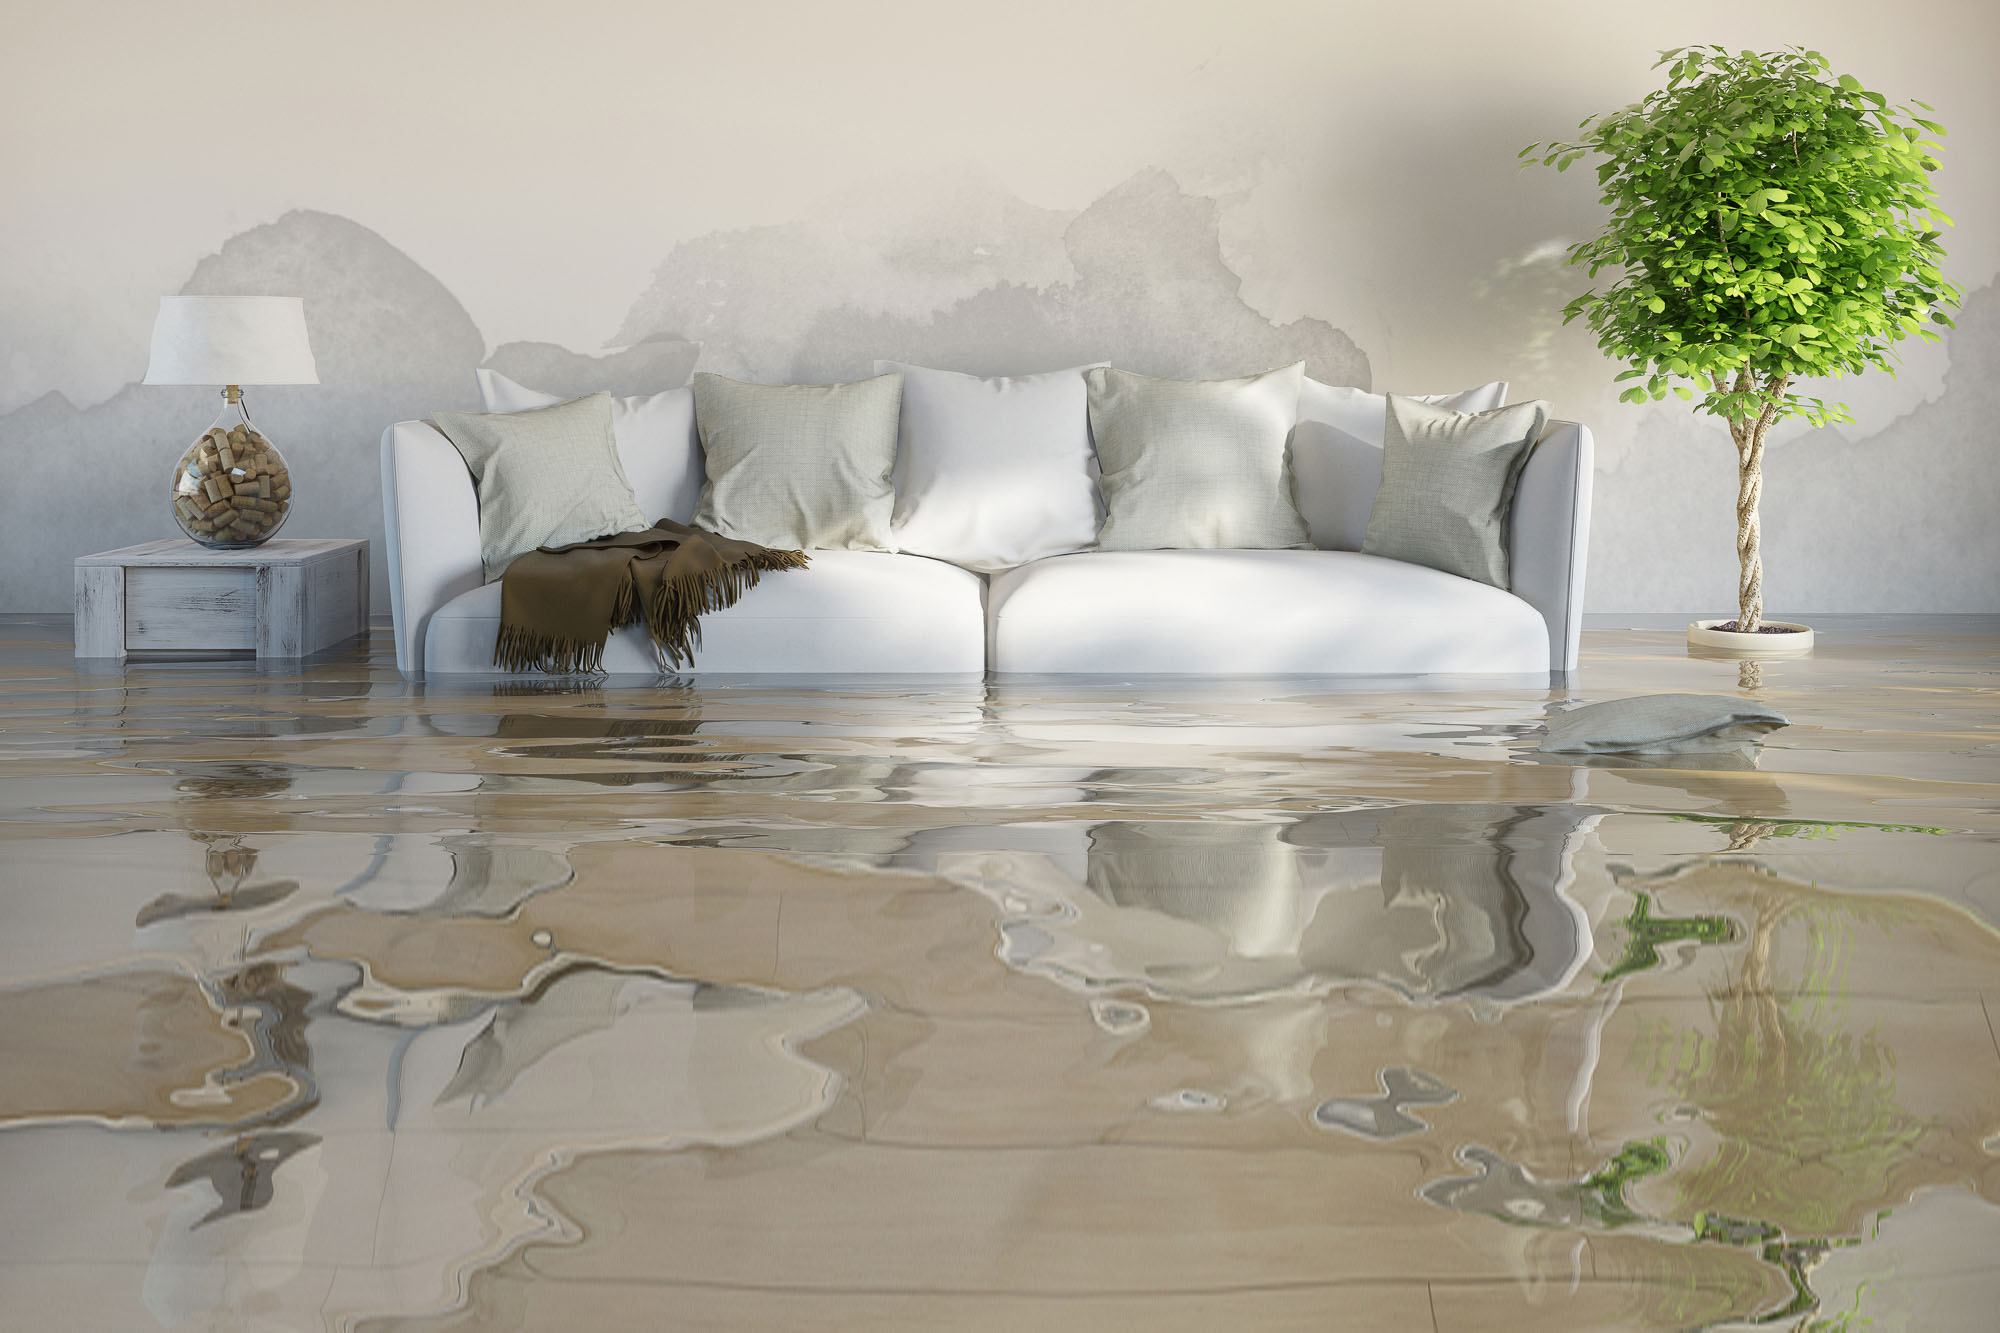 Water Damage Event – Do's and Dont's for the Home Owners